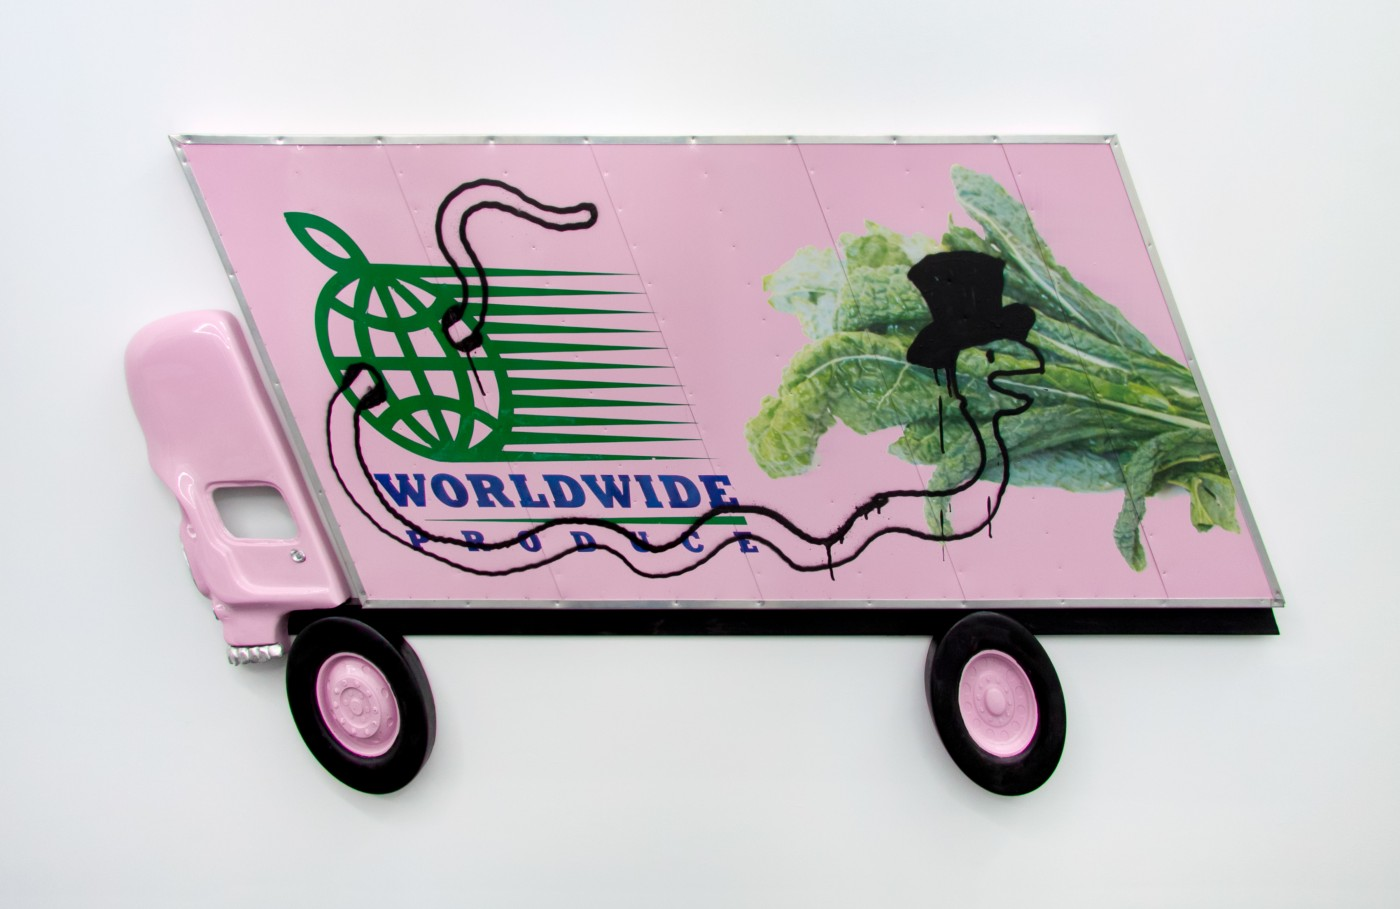 WIND PARADE  Box Truck Painting (Kale)</I>, 2014   Inkjet, enamel, spray paint, urethane, pewter, aluminum, wood   80 x 160 x 3 cm / 31.4 x 63.9 x 1.2 in - High Art Gallery Paris